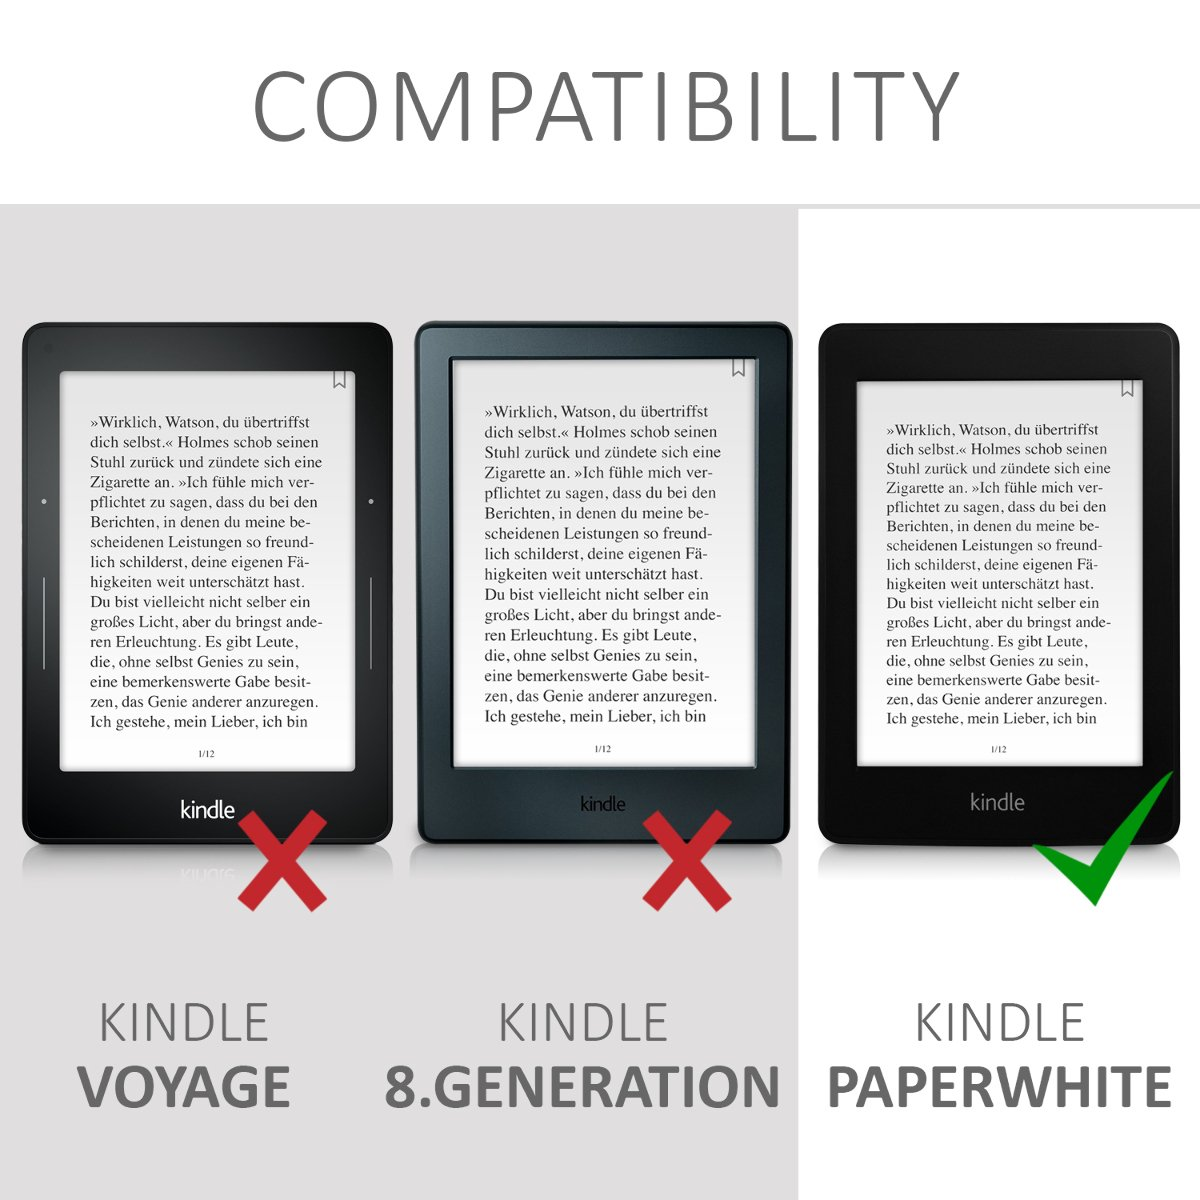 kwmobile Case for Amazon Kindle Paperwhite - Book Style Felt Fabric Protective e-Reader Cover Folio Case - black by kwmobile (Image #7)